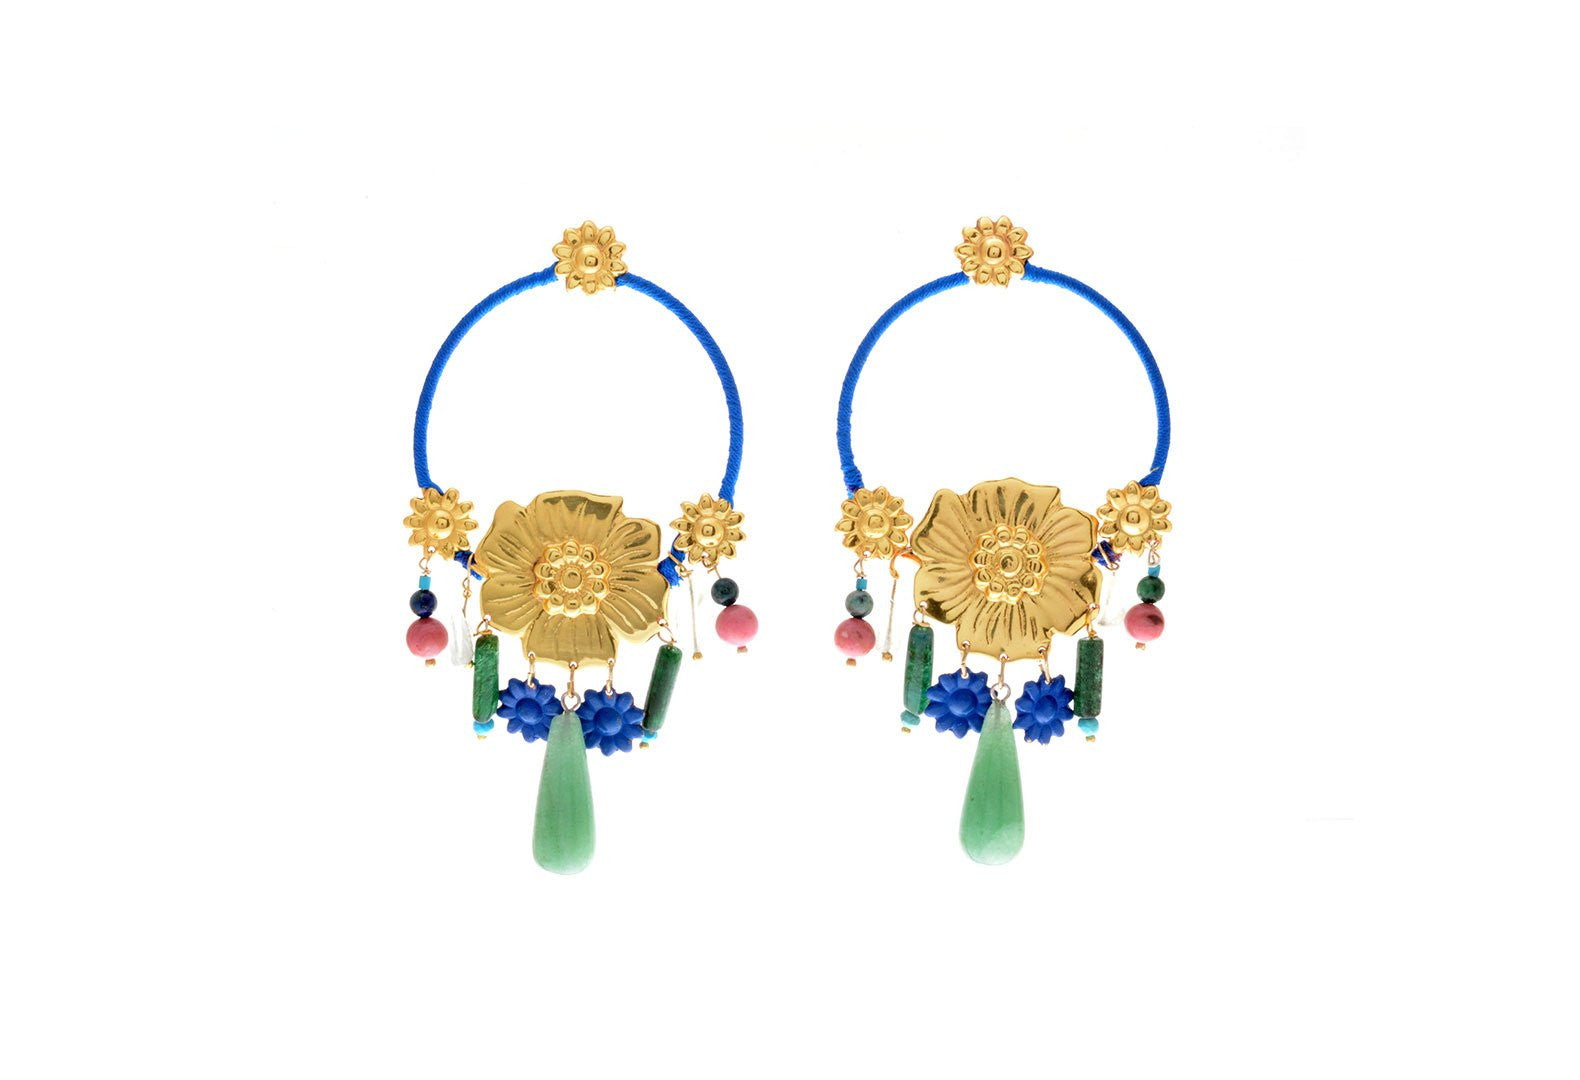 Jardin Secreto Laguna Earrings, Valentina Rosenthal Jewelry, Found By Lesetta